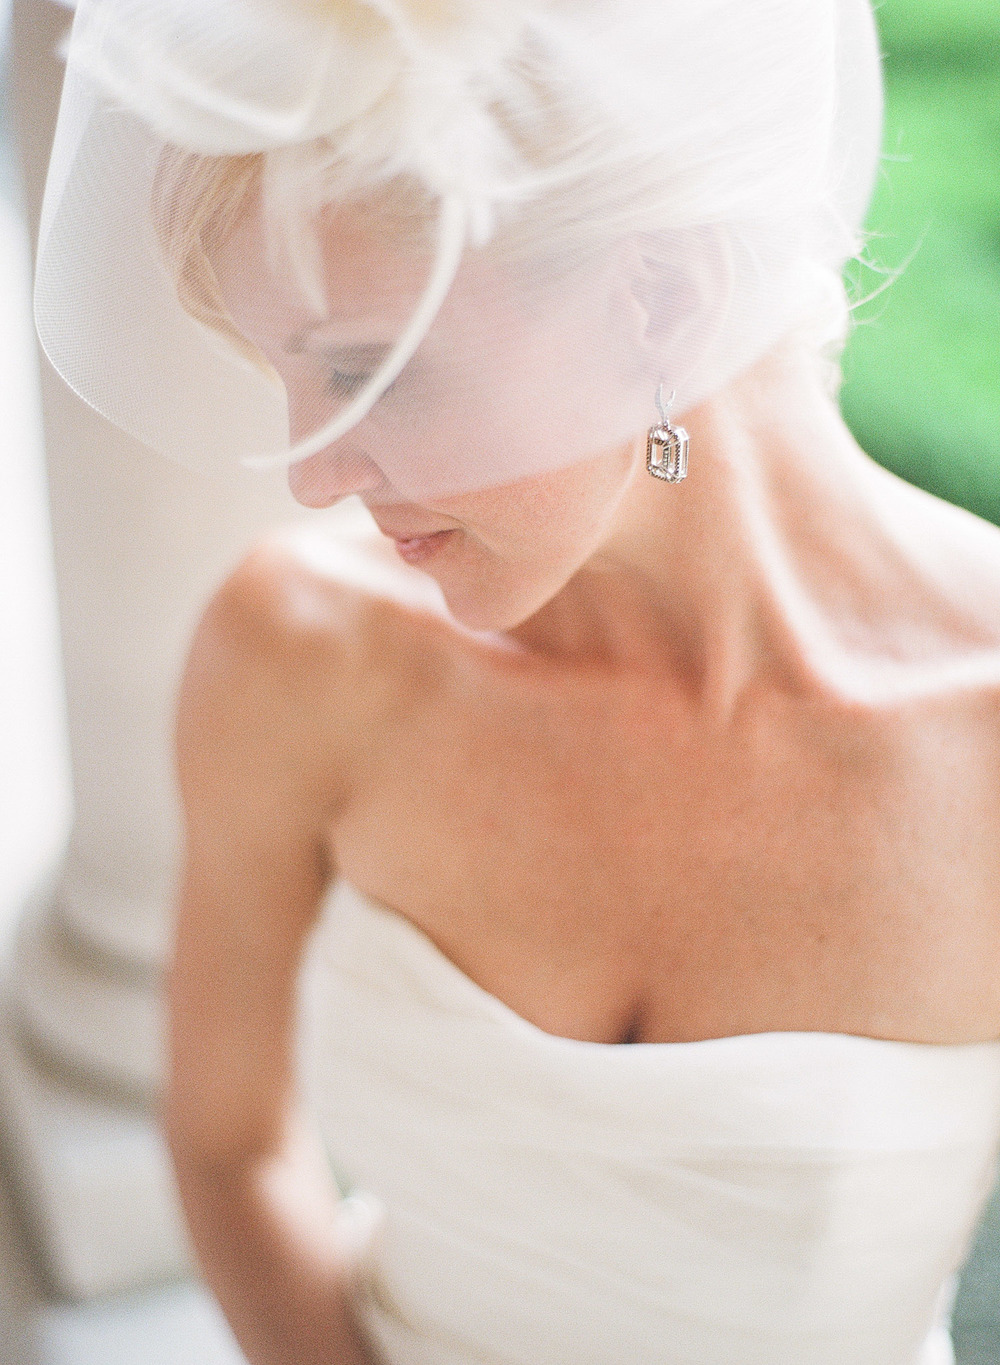 wedding hat on a bride at an italian wedding at The Villa Terrace photographed by Lexia Frank photography, film photographer who shoots luxury destination weddings